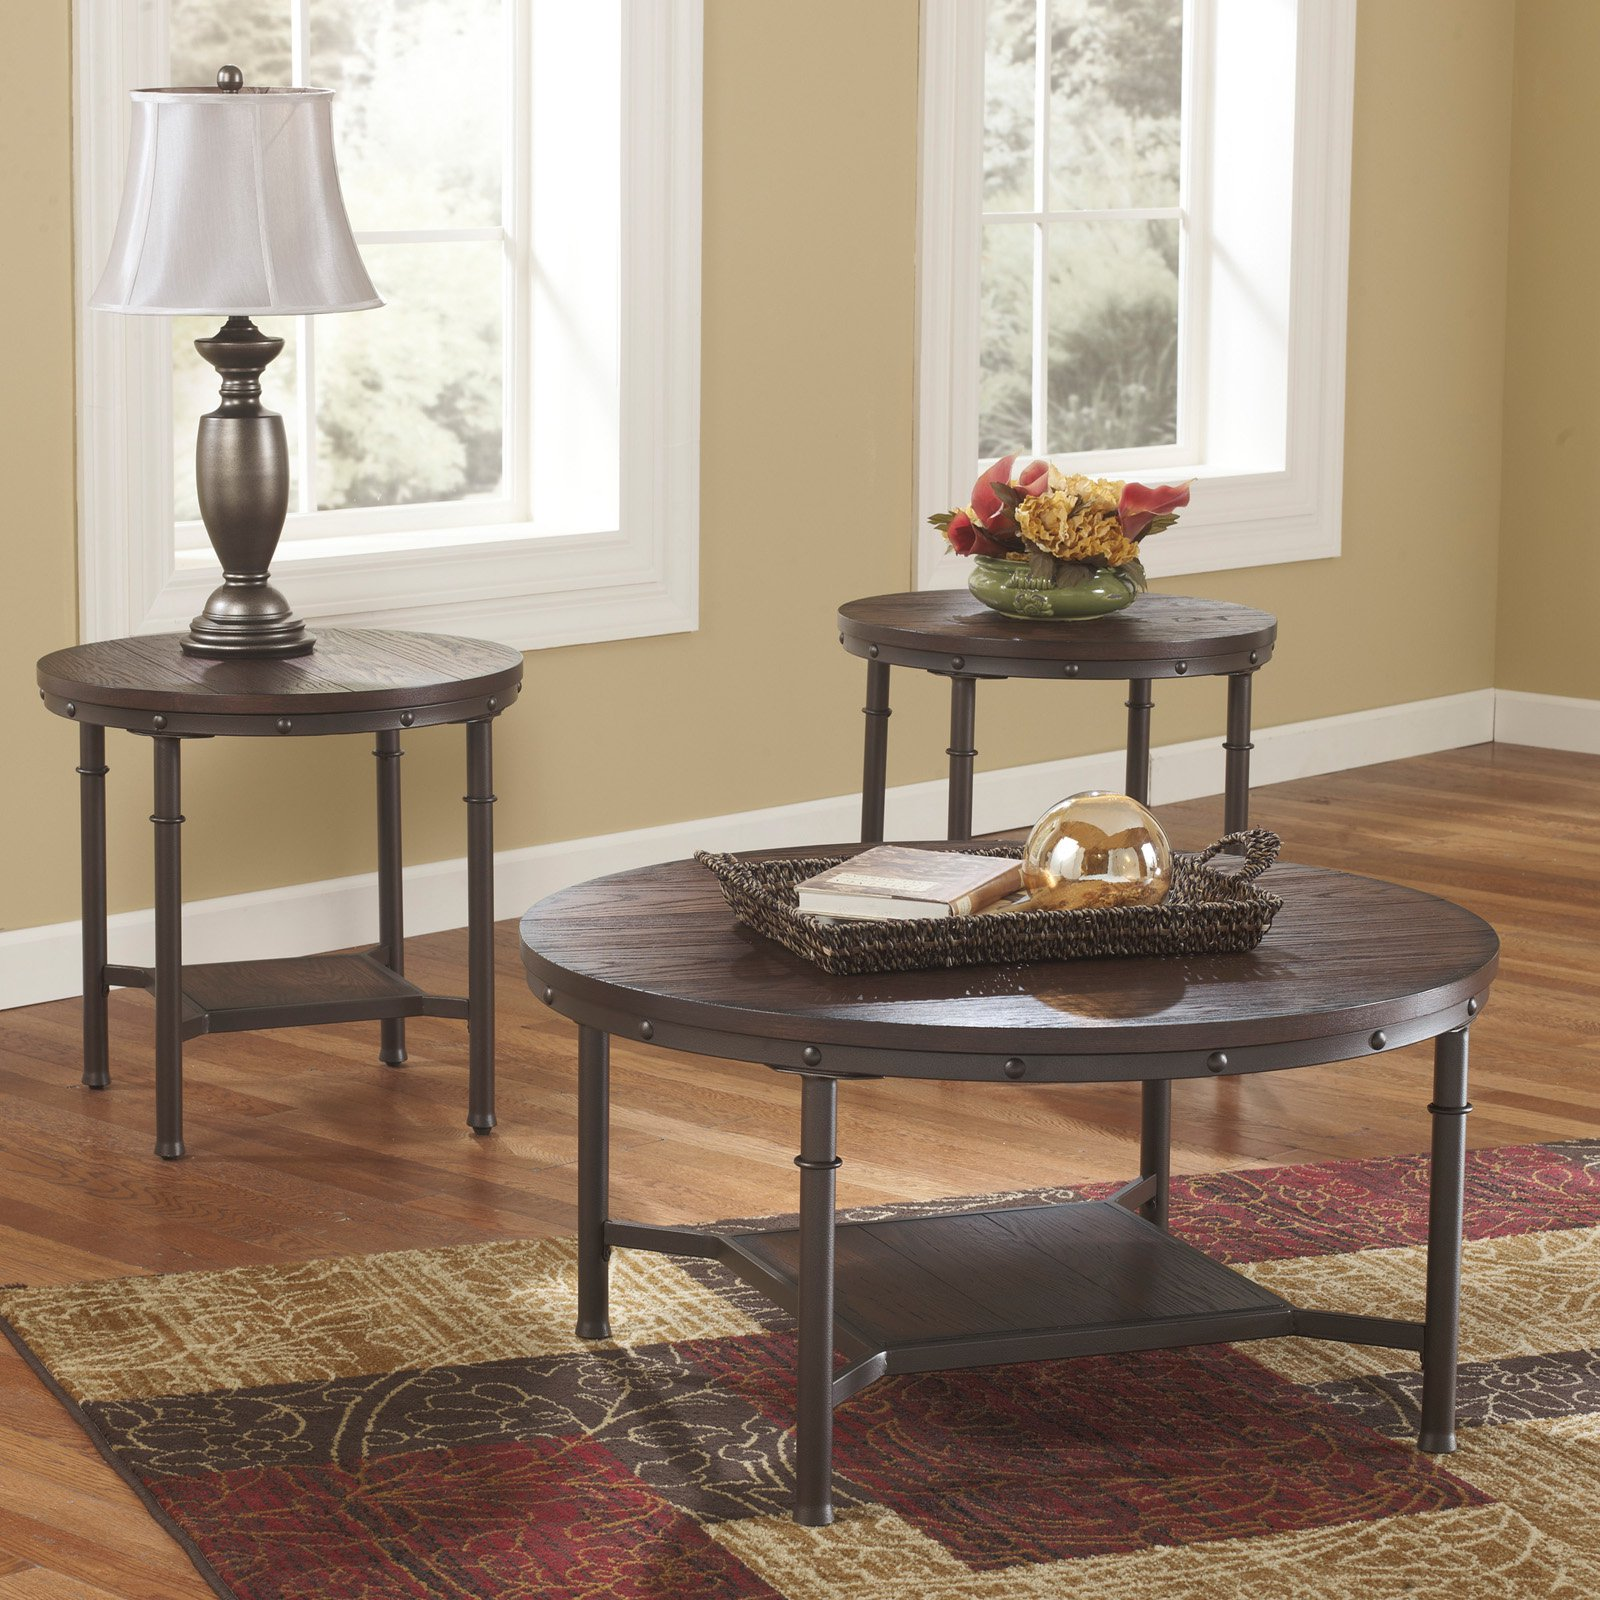 Signature Design By Ashley Sandling Brown Occasional Table - Set of 3